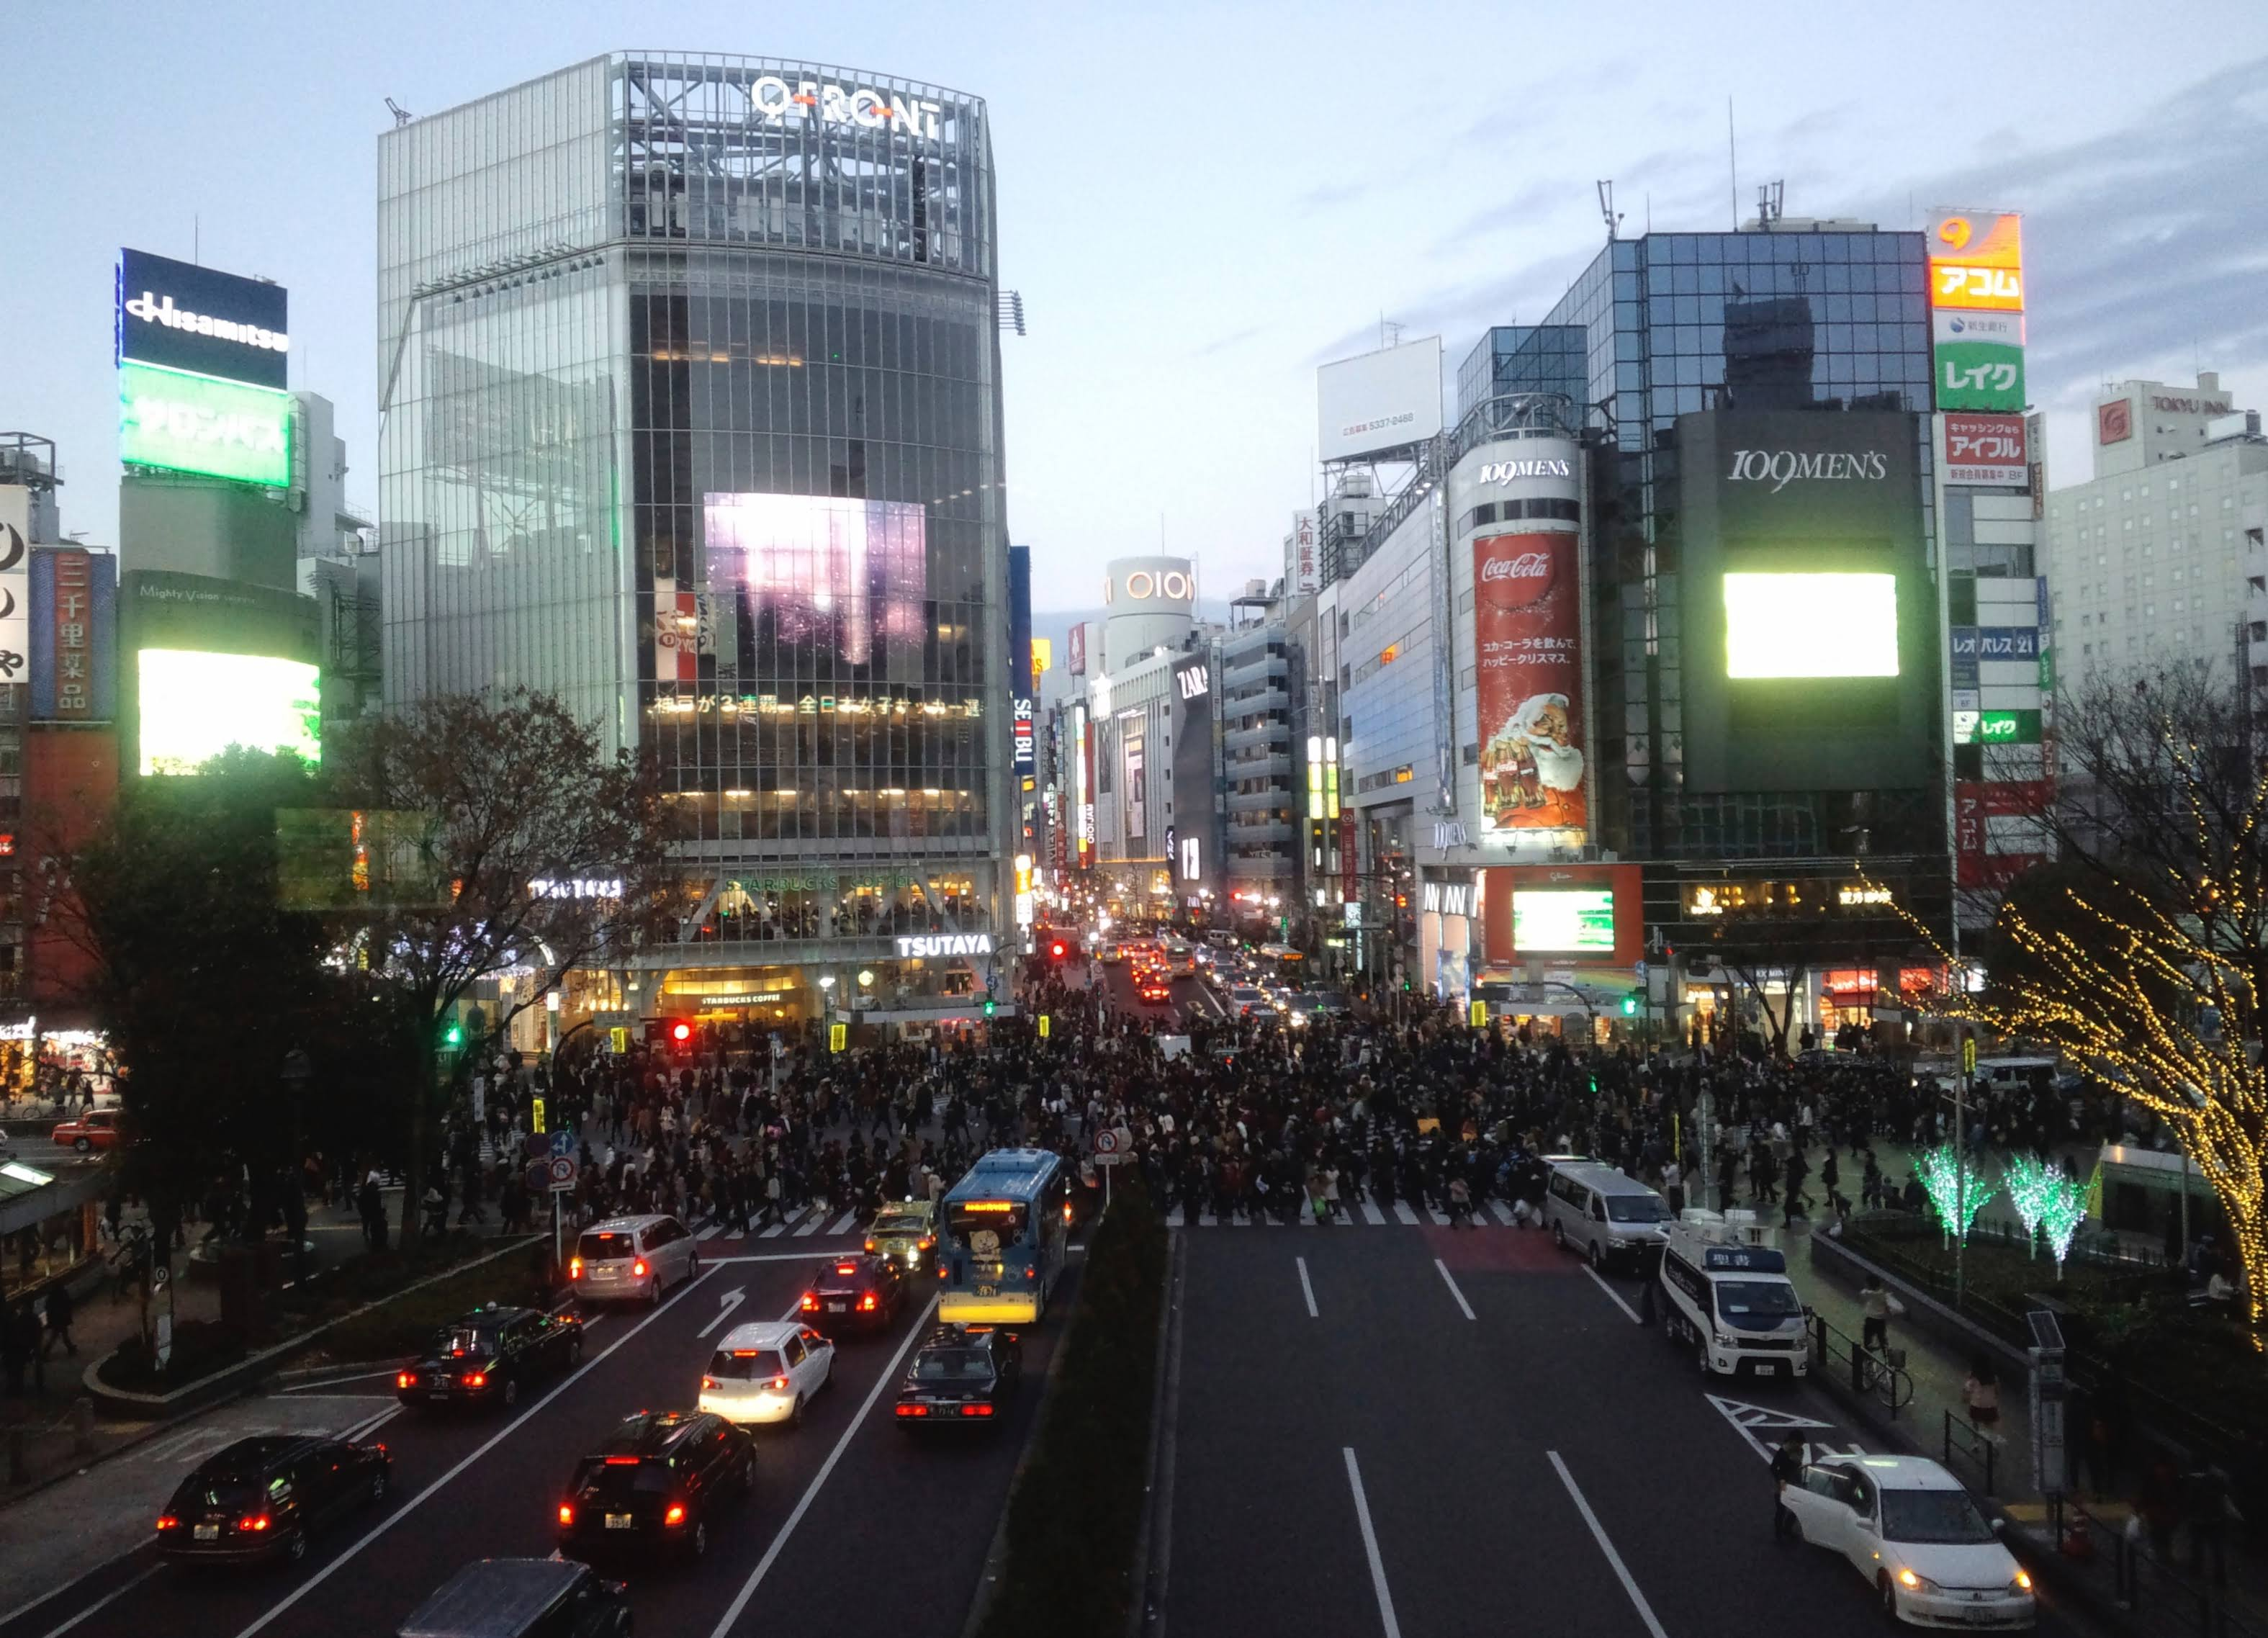 View of the Scramble from the Shibuya Mark City concourse.